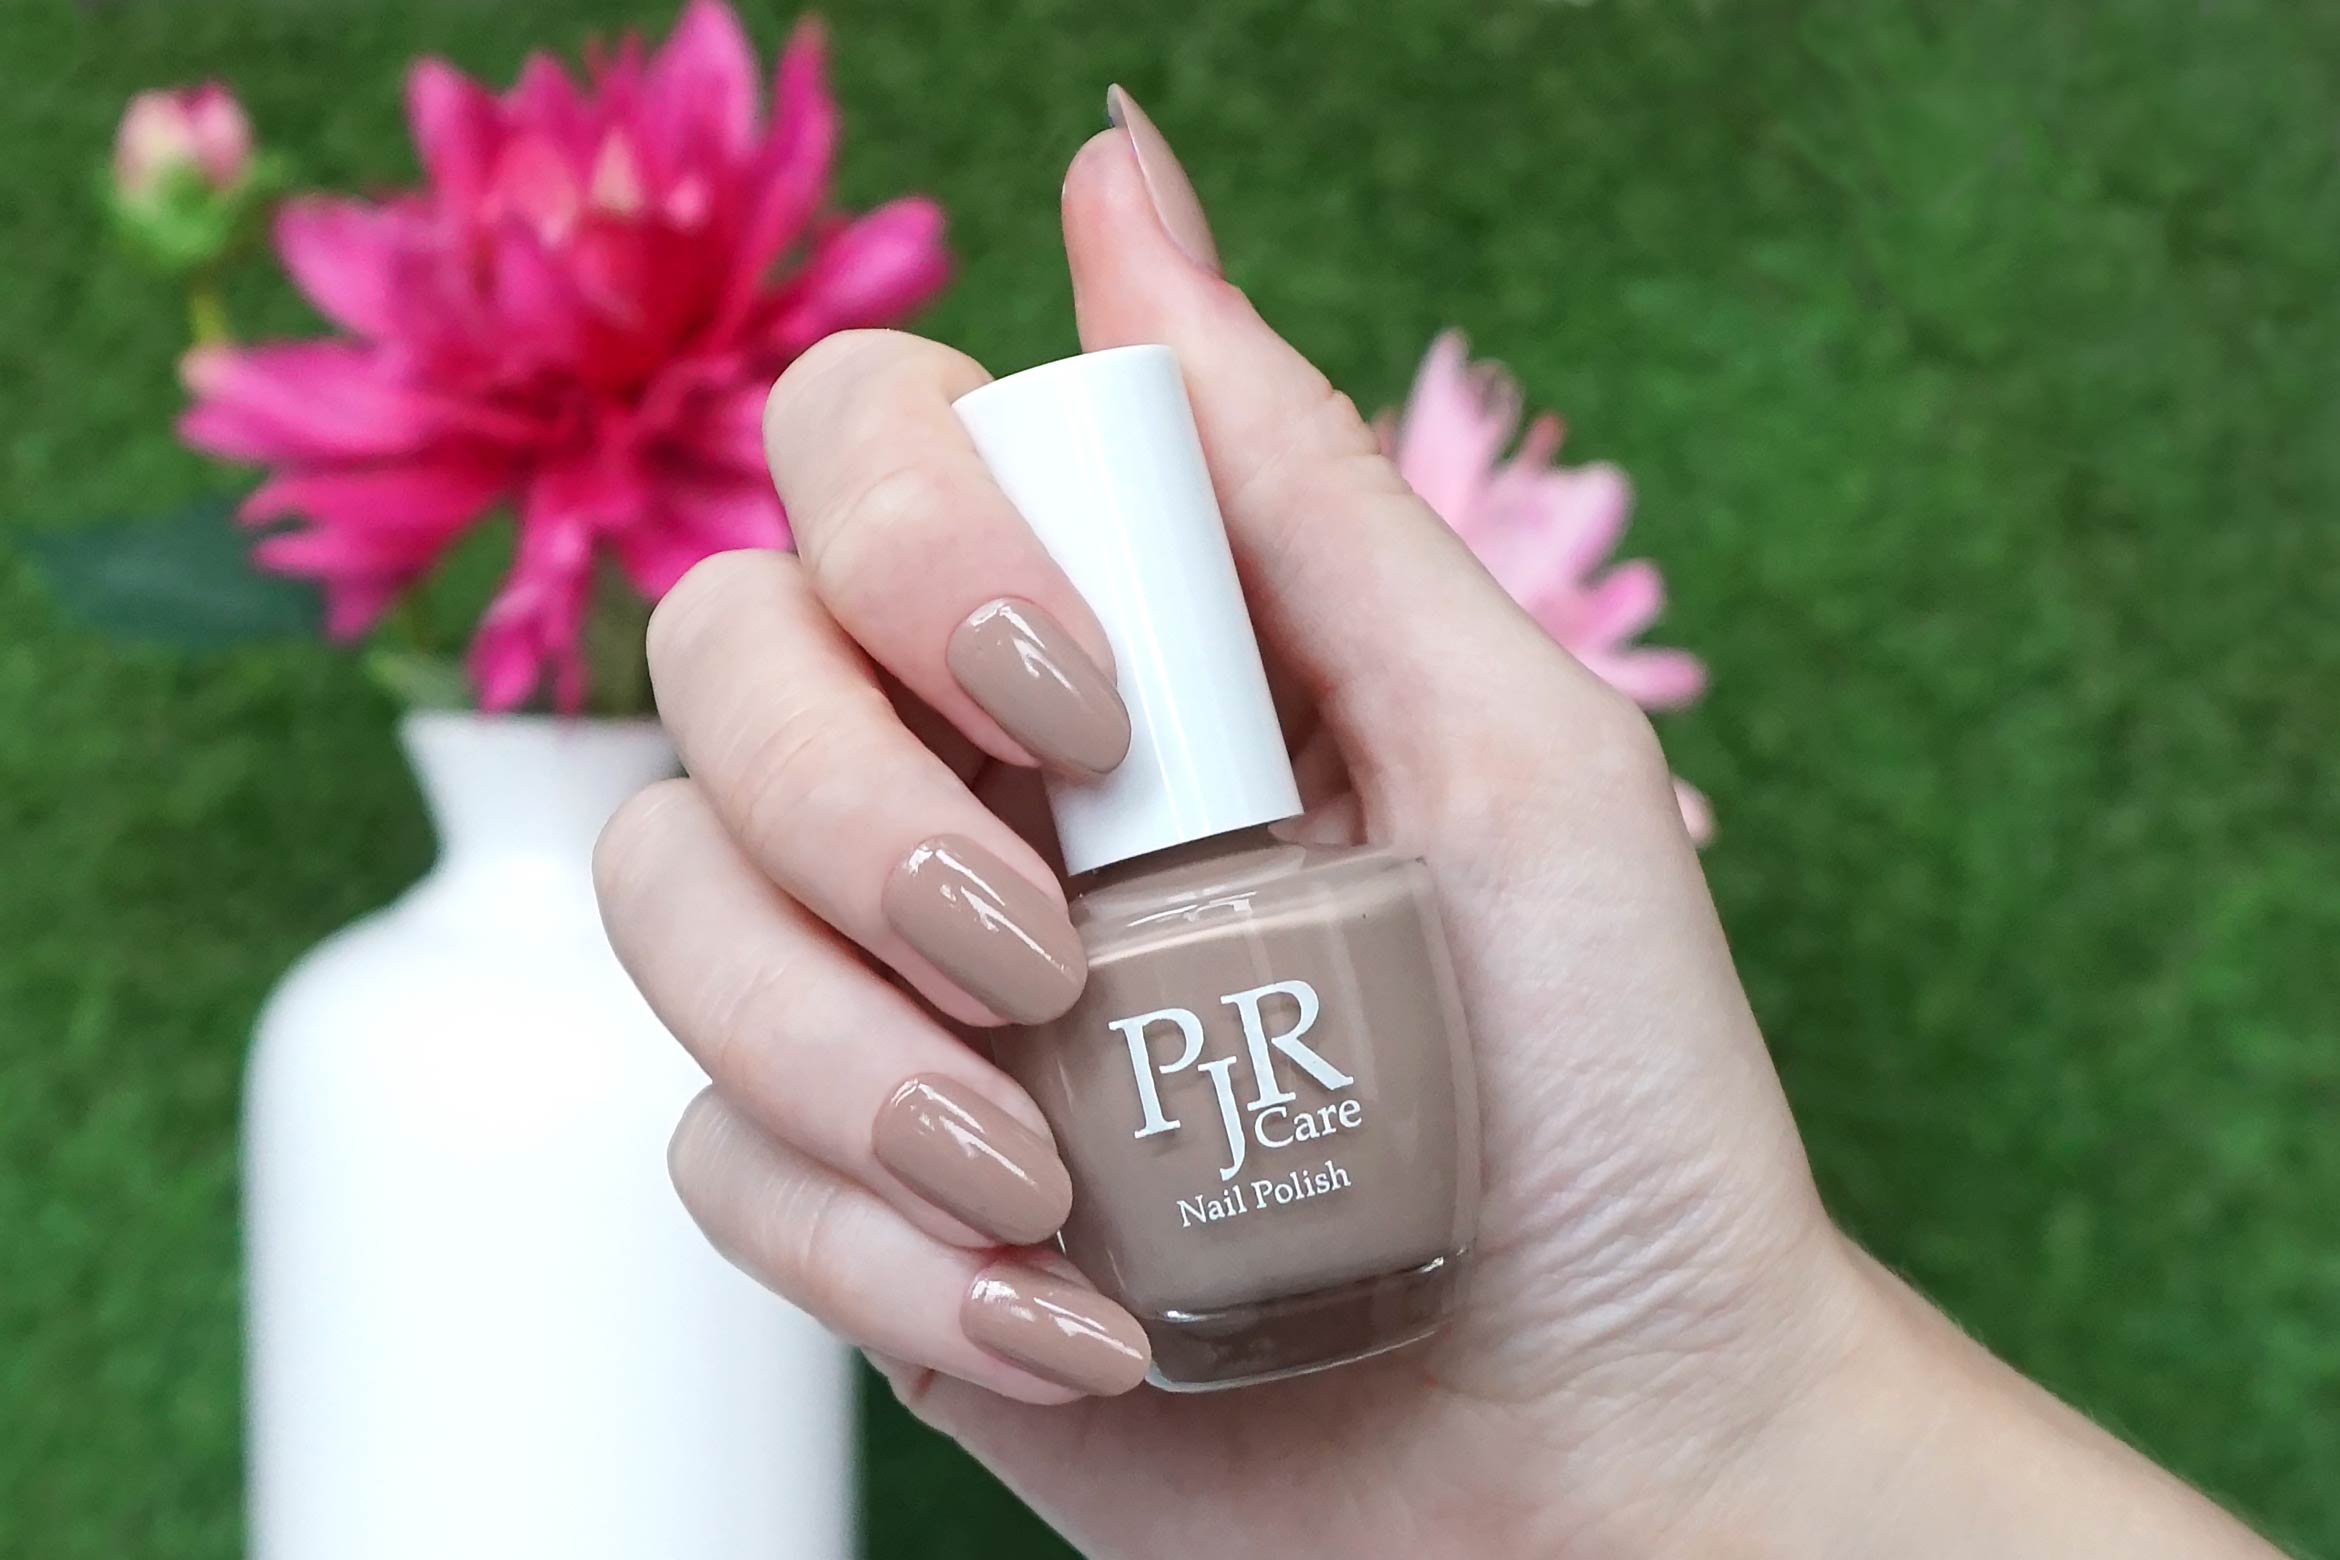 PJR care filled with light swatch